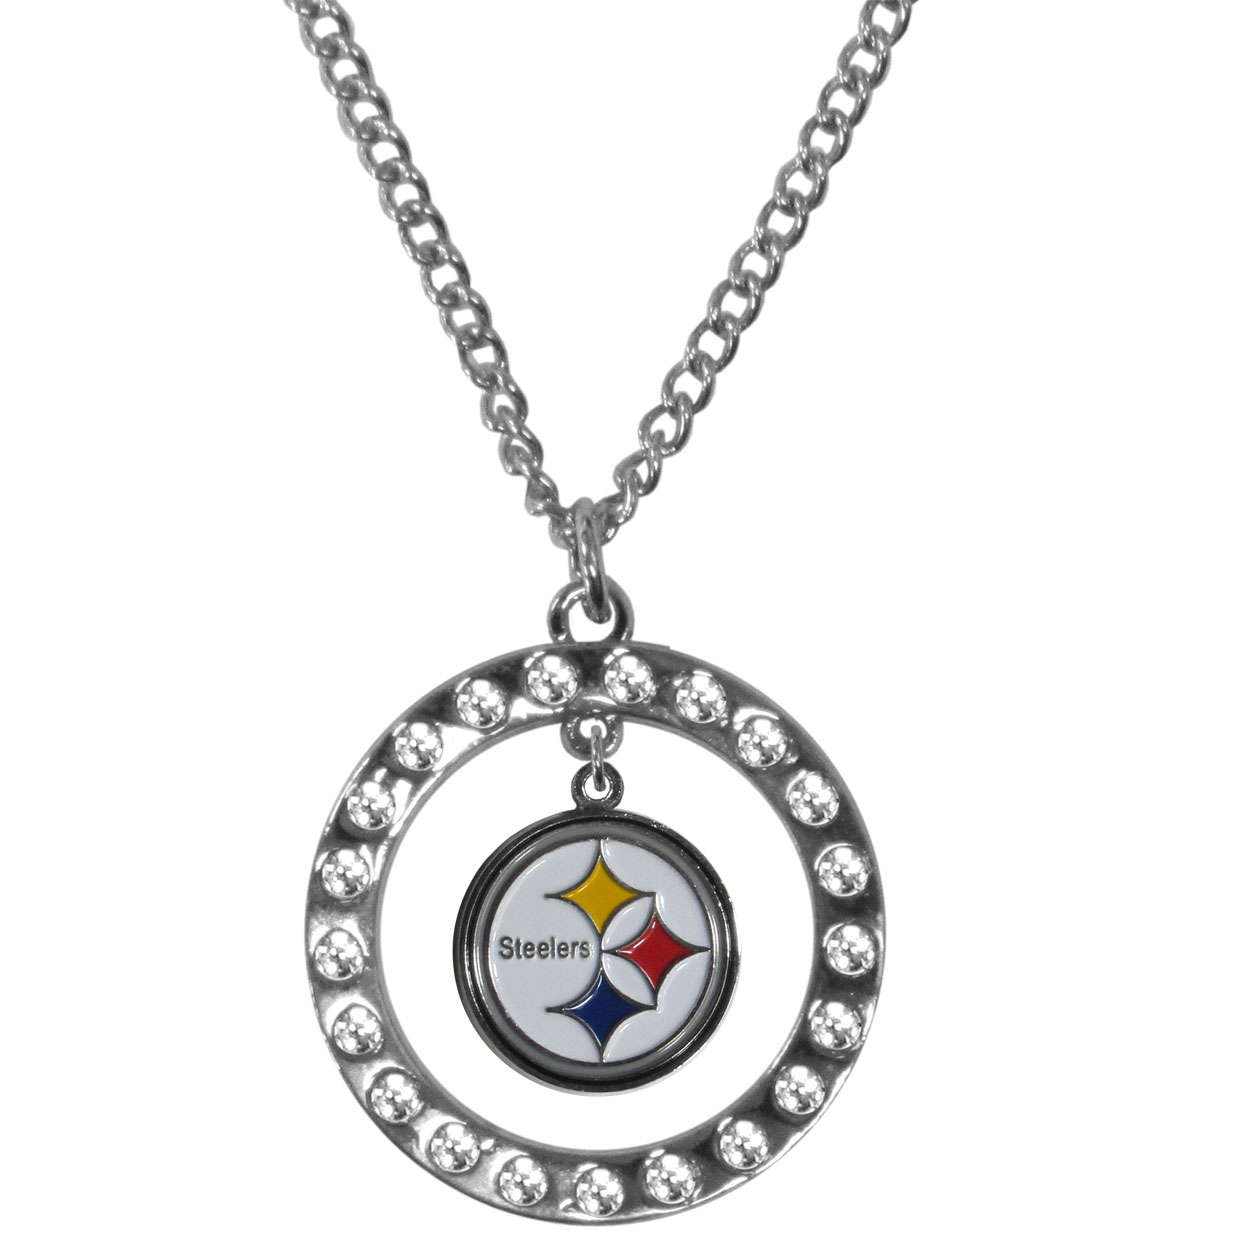 Pittsburgh Steelers Rhinestone Hoop Necklaces - Our Pittsburgh Steelers rhinestone hoop necklace comes on an 18 inch chain and features a hoop covered in rhinestones with a high polish chrome finish and a cast and enameled team charm dangling in the center.